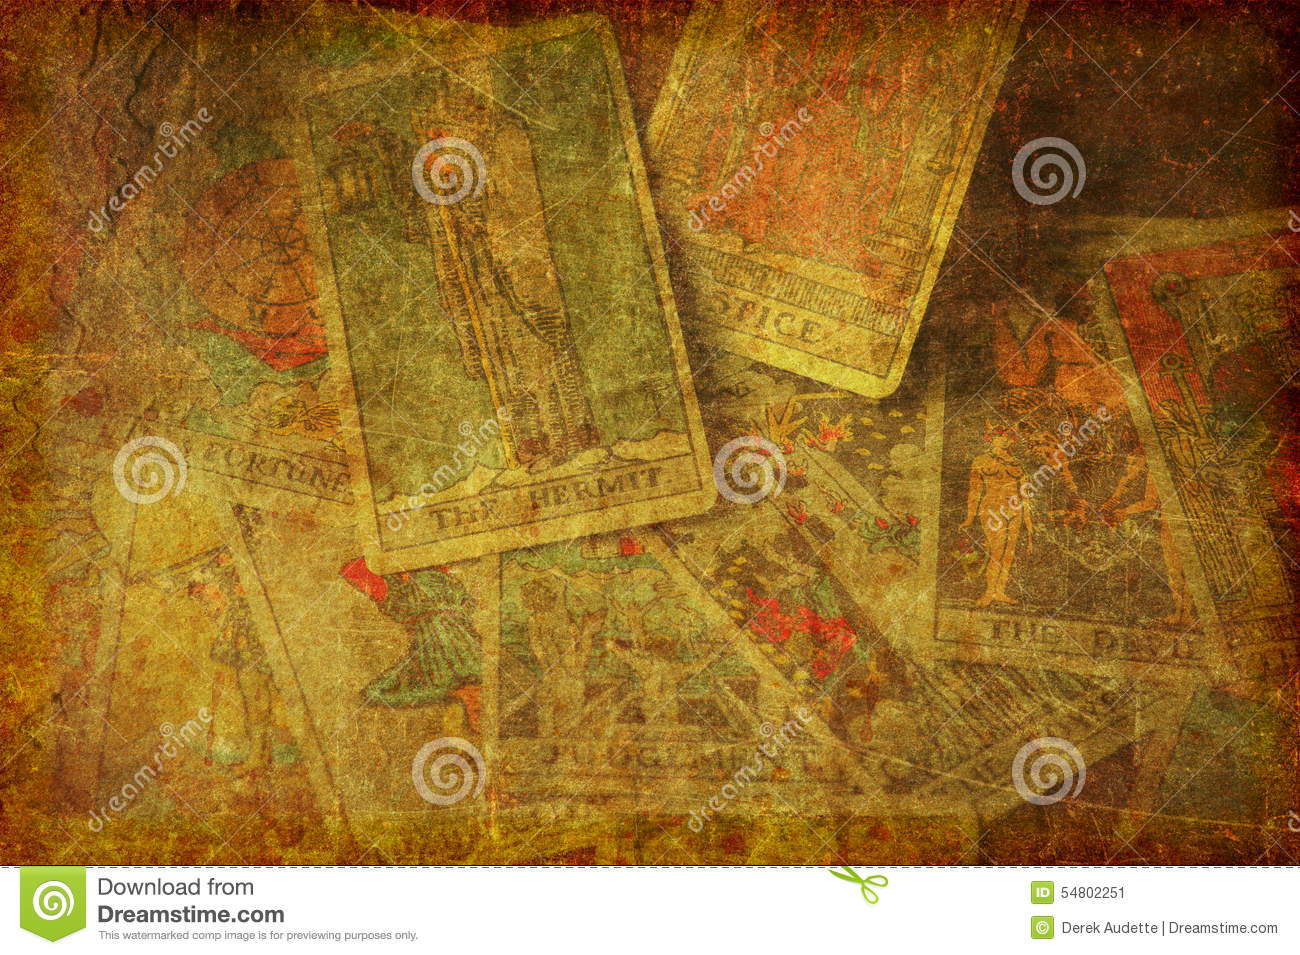 grunge tarot cards background textured stock photo